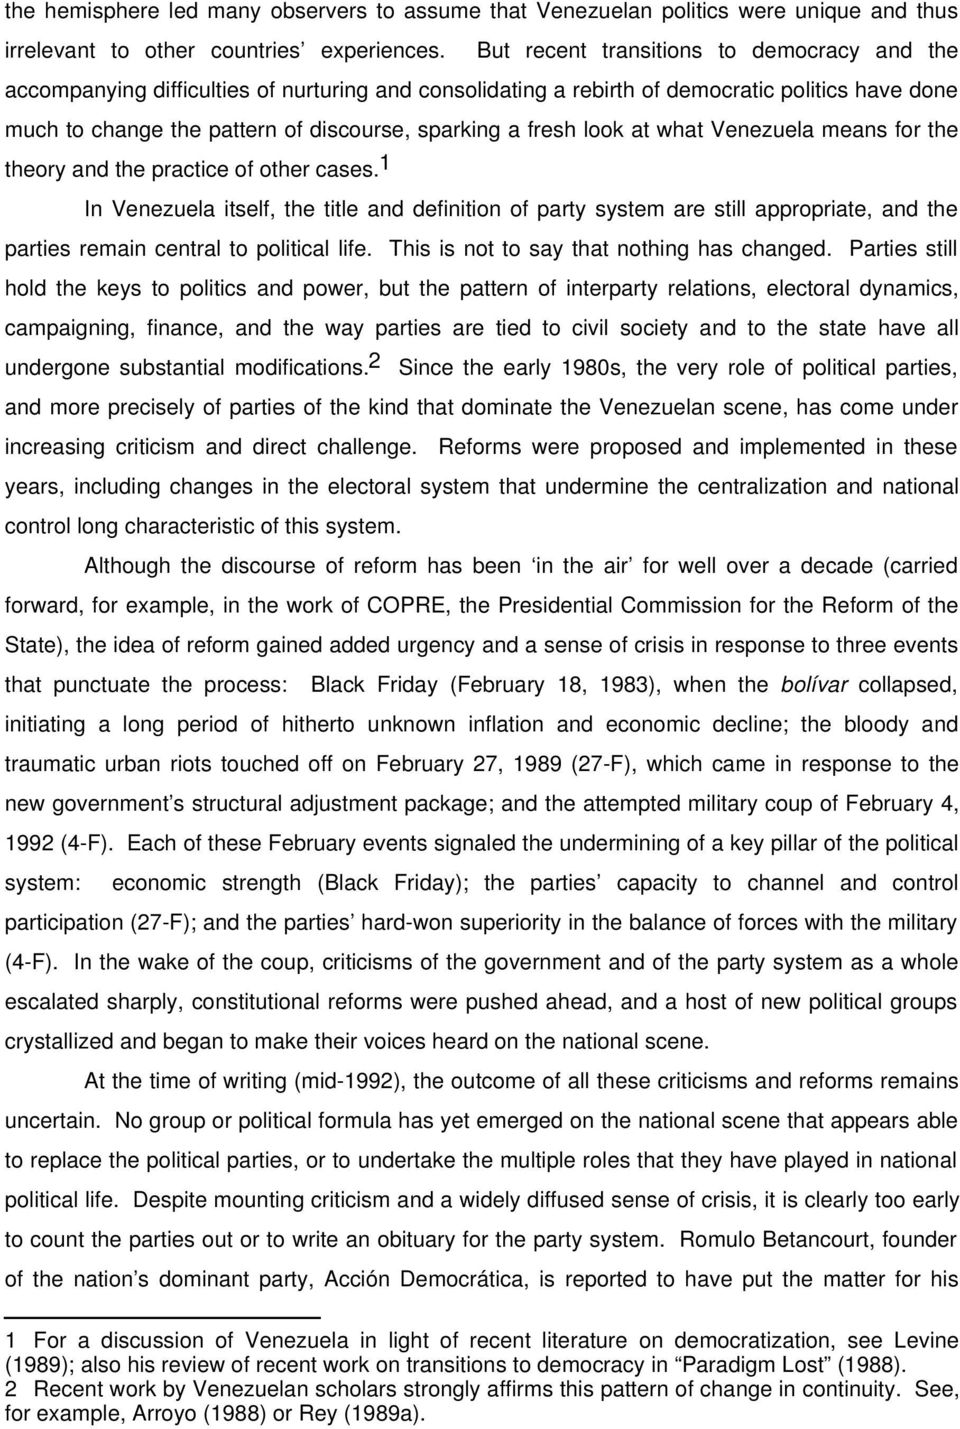 fresh look at what Venezuela means for the theory and the practice of other cases.